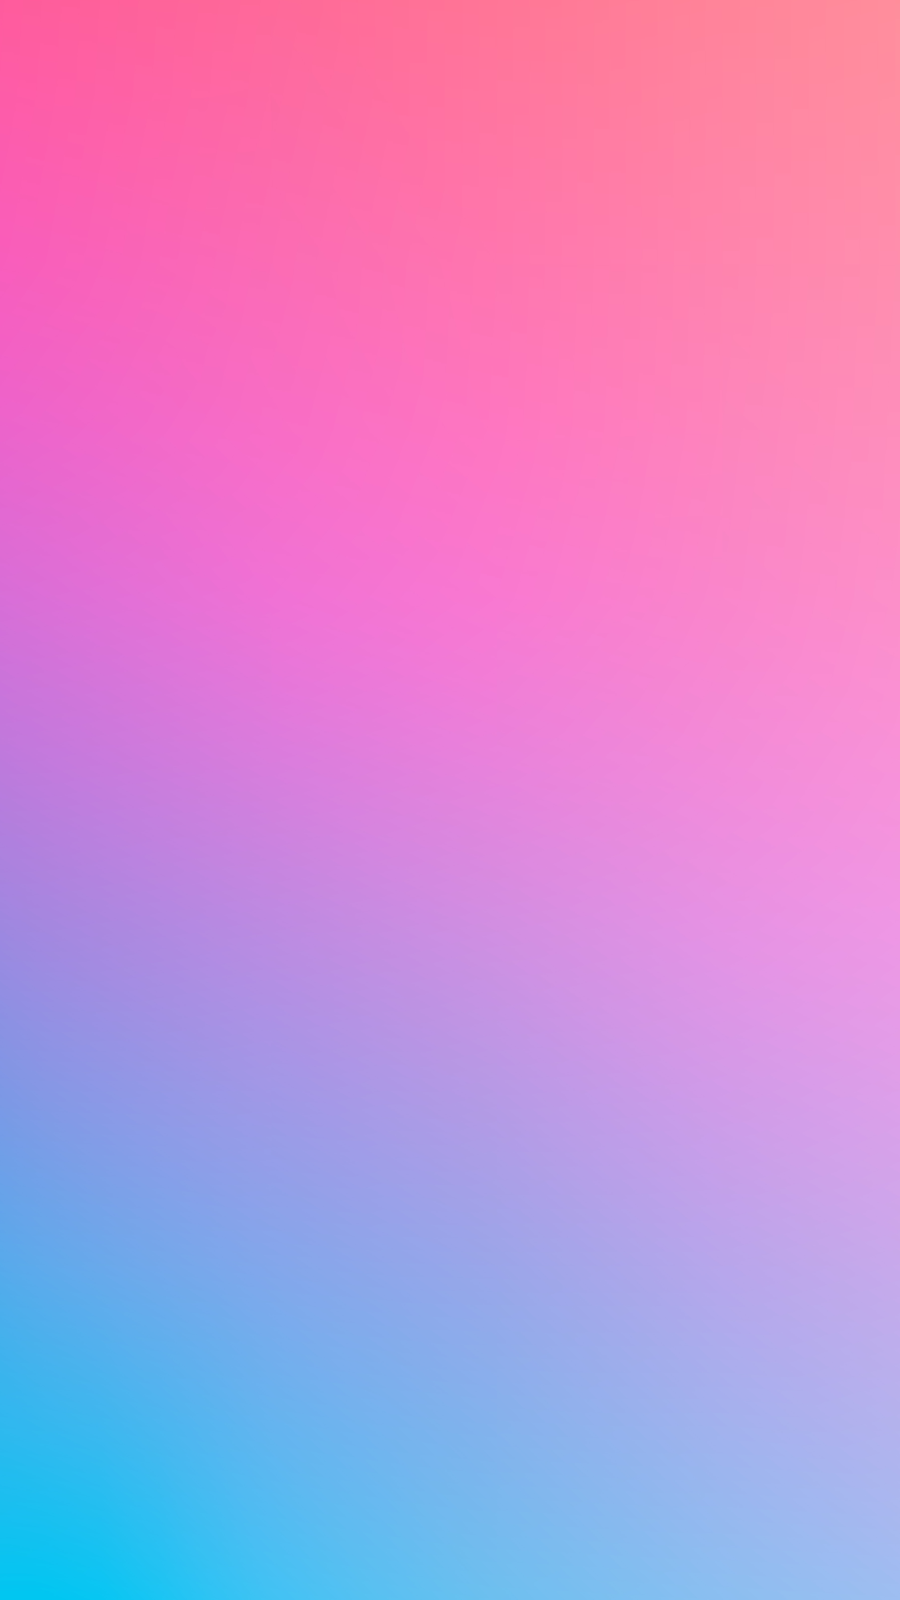 Gradient pink and Blue wallpaper